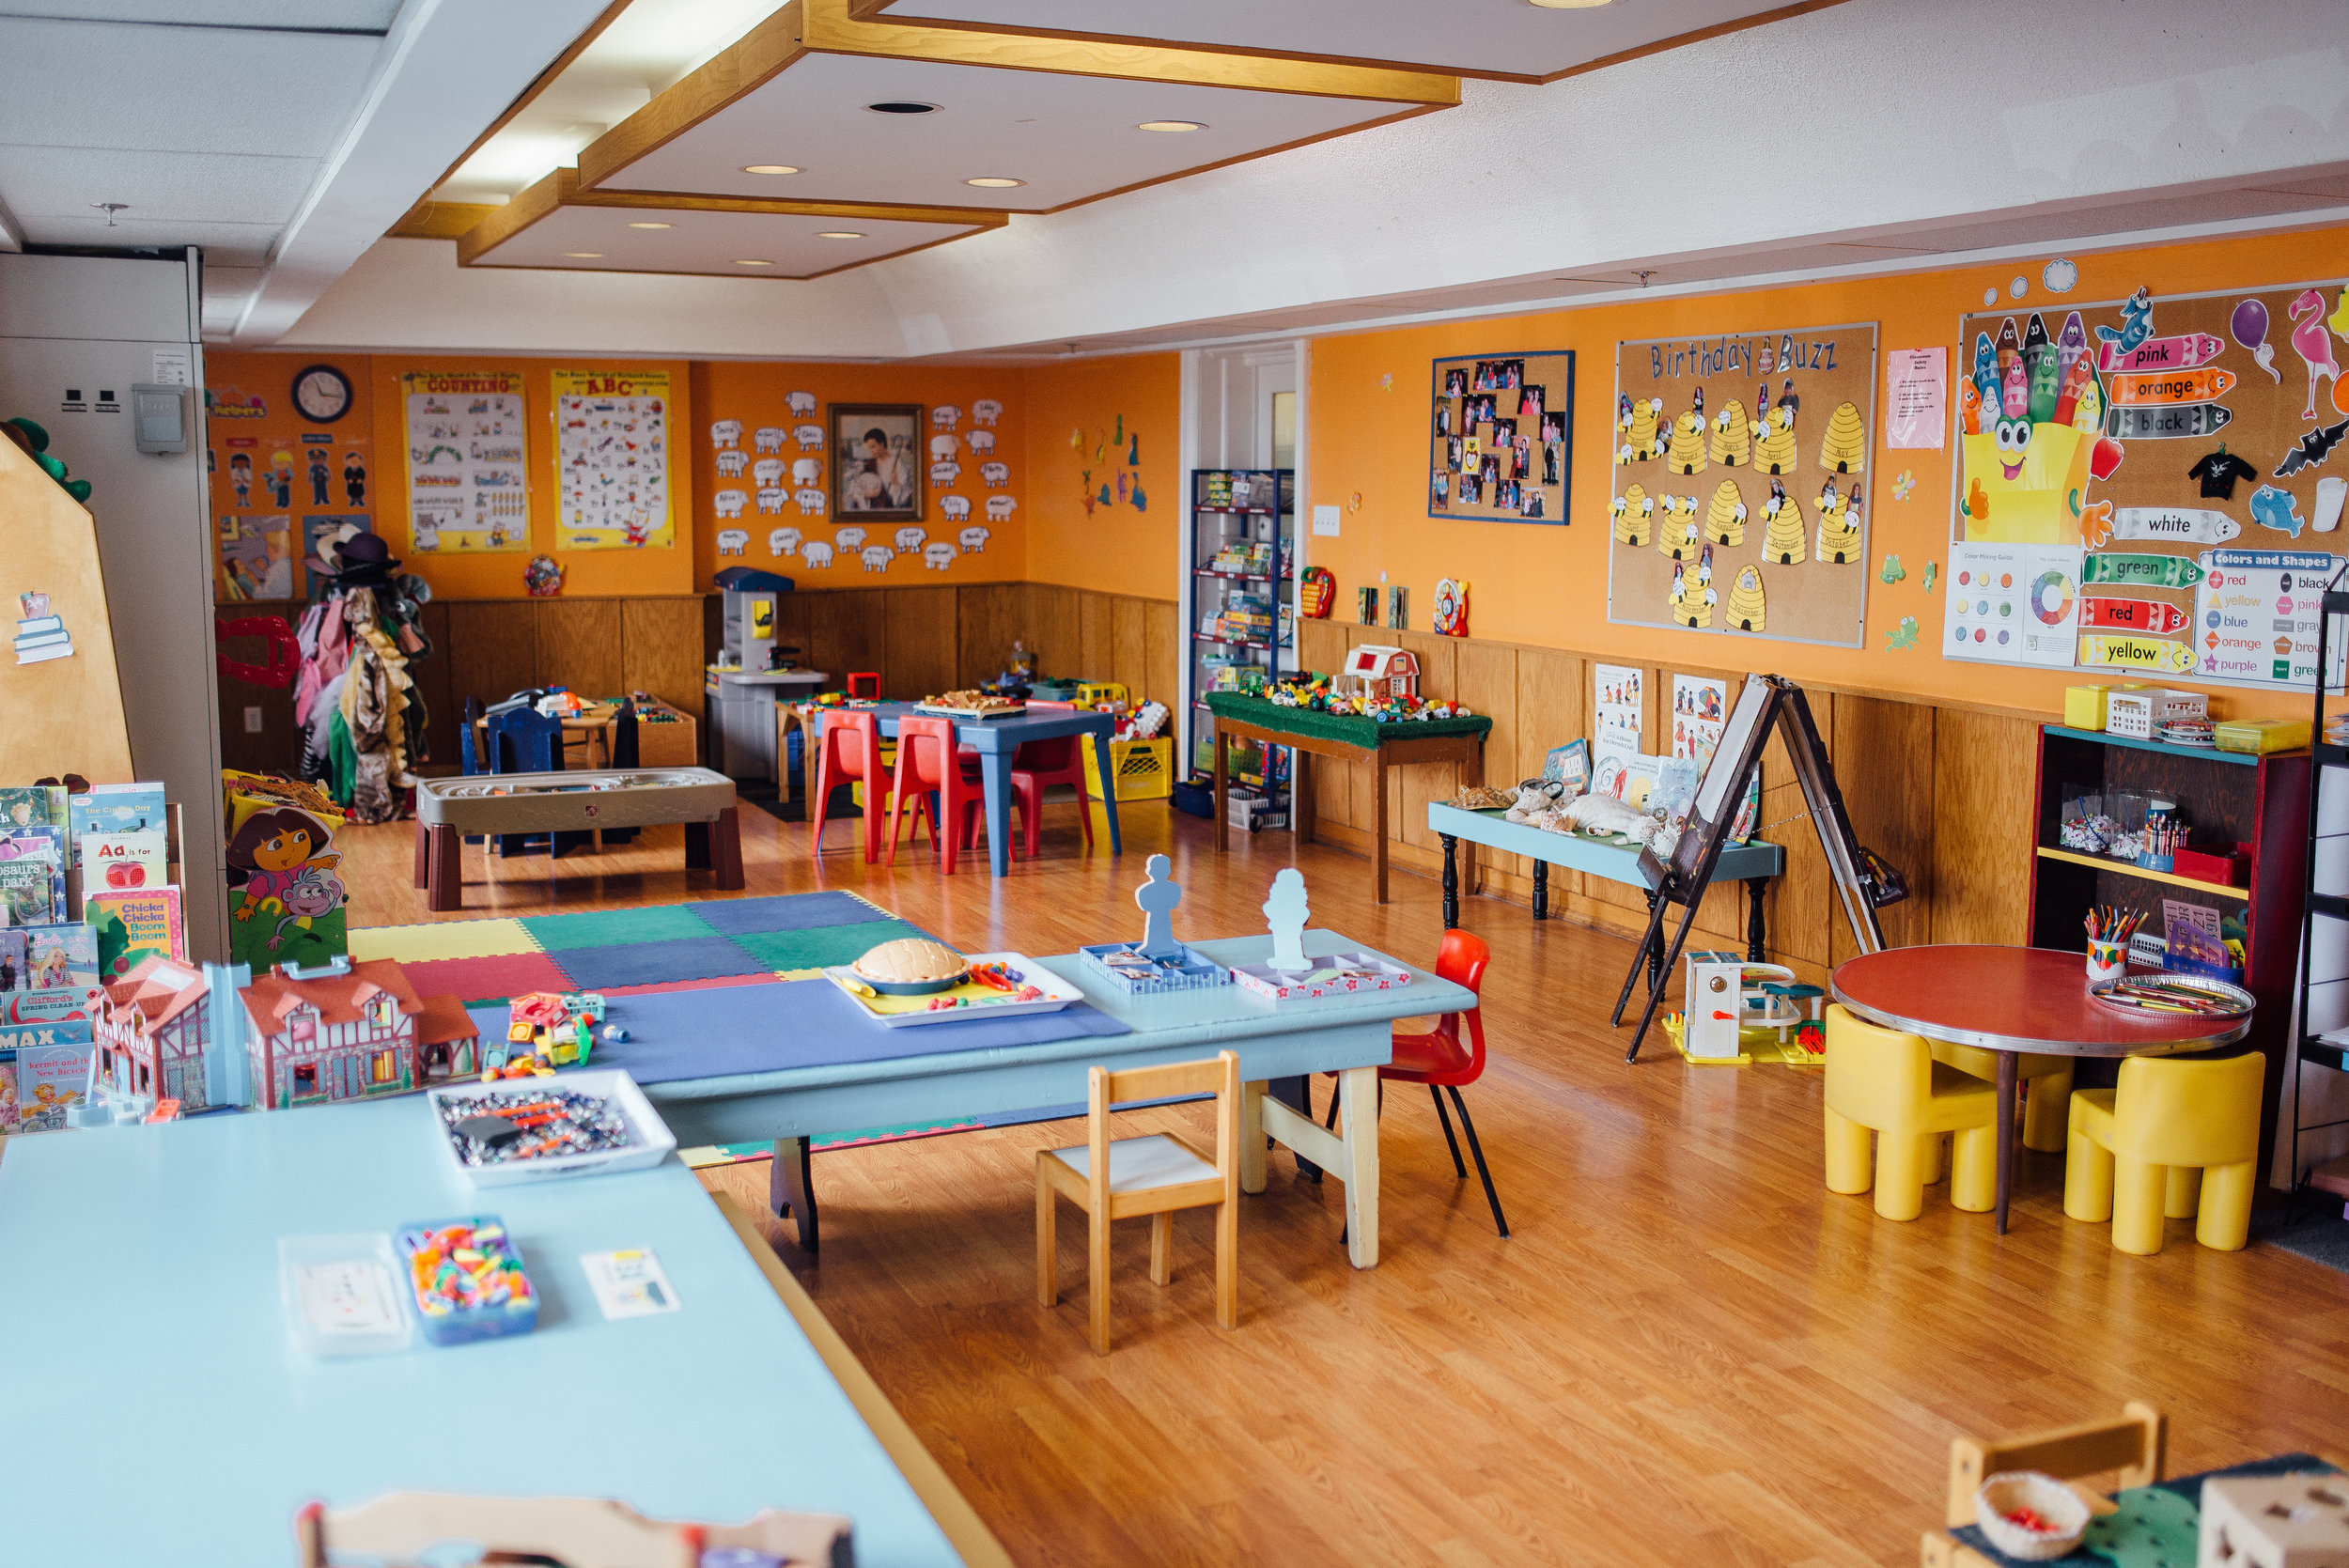 Our government-licensed pre-school is FULL of engaging, learning-based toys, pictures and activities to prepare 3 and 4 years old for Kindergarten. Each year, our pre-school facilities and program WOW the inspectors!